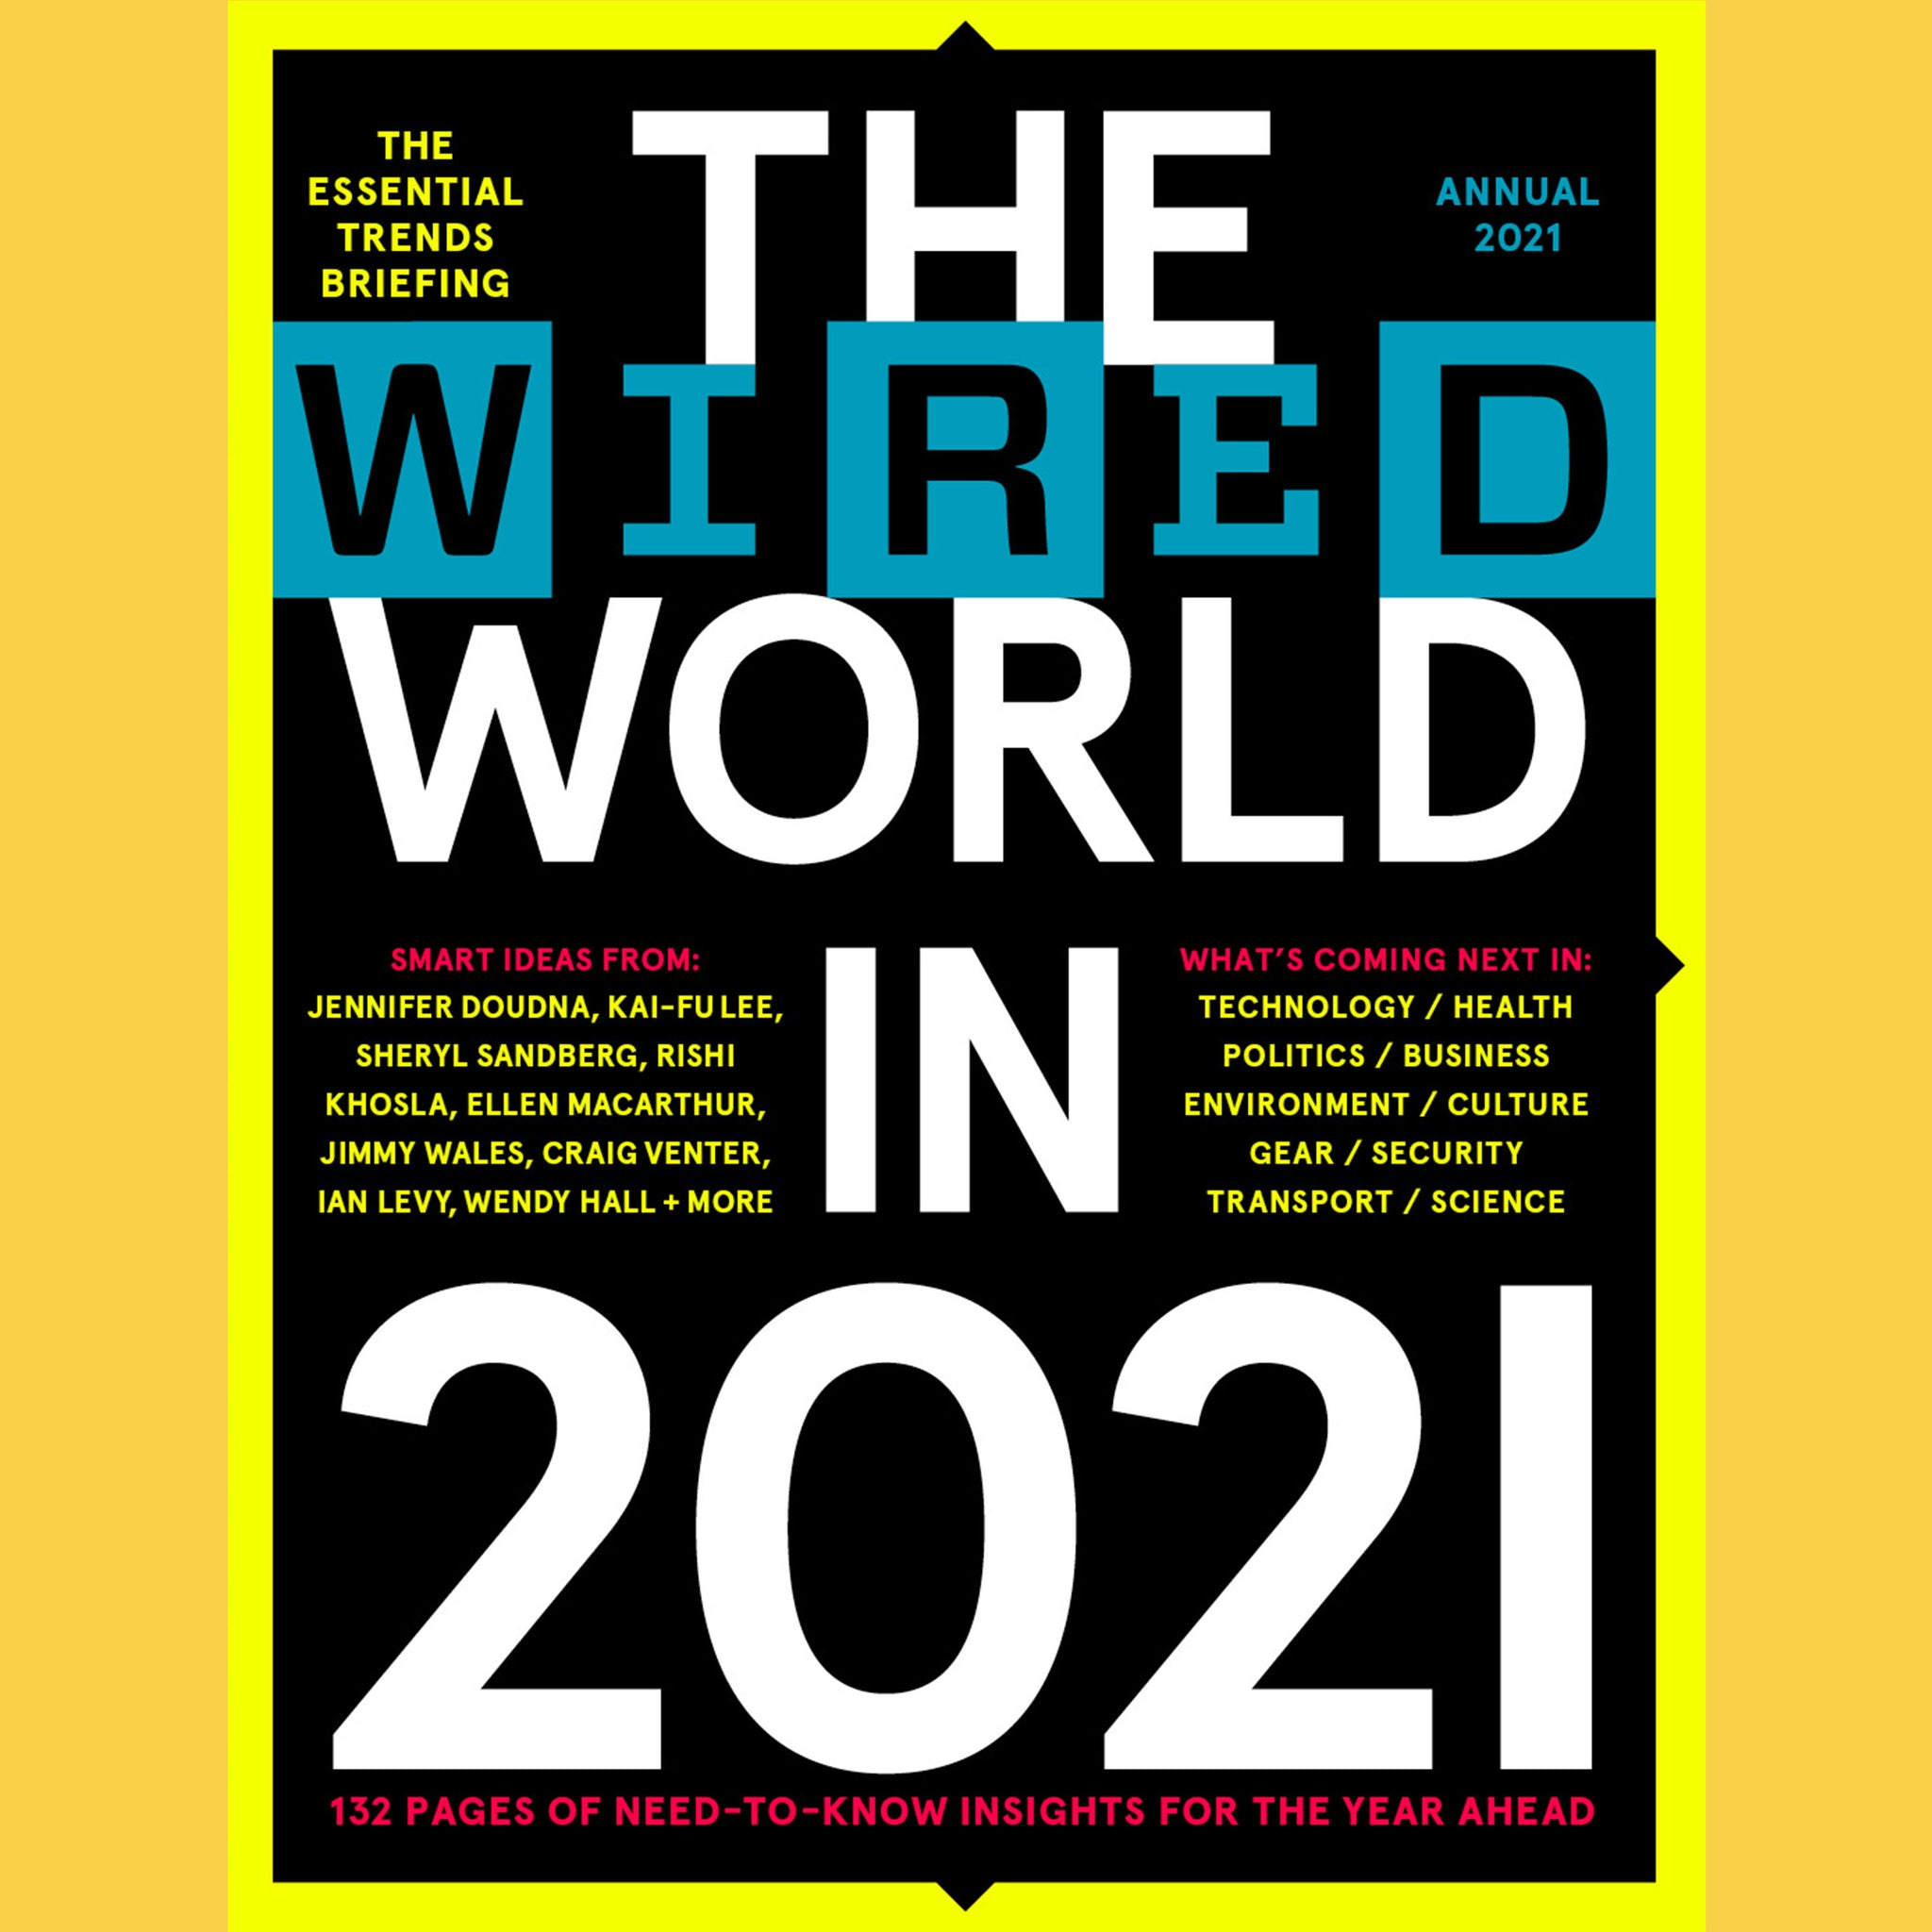 The WIRED World 2021